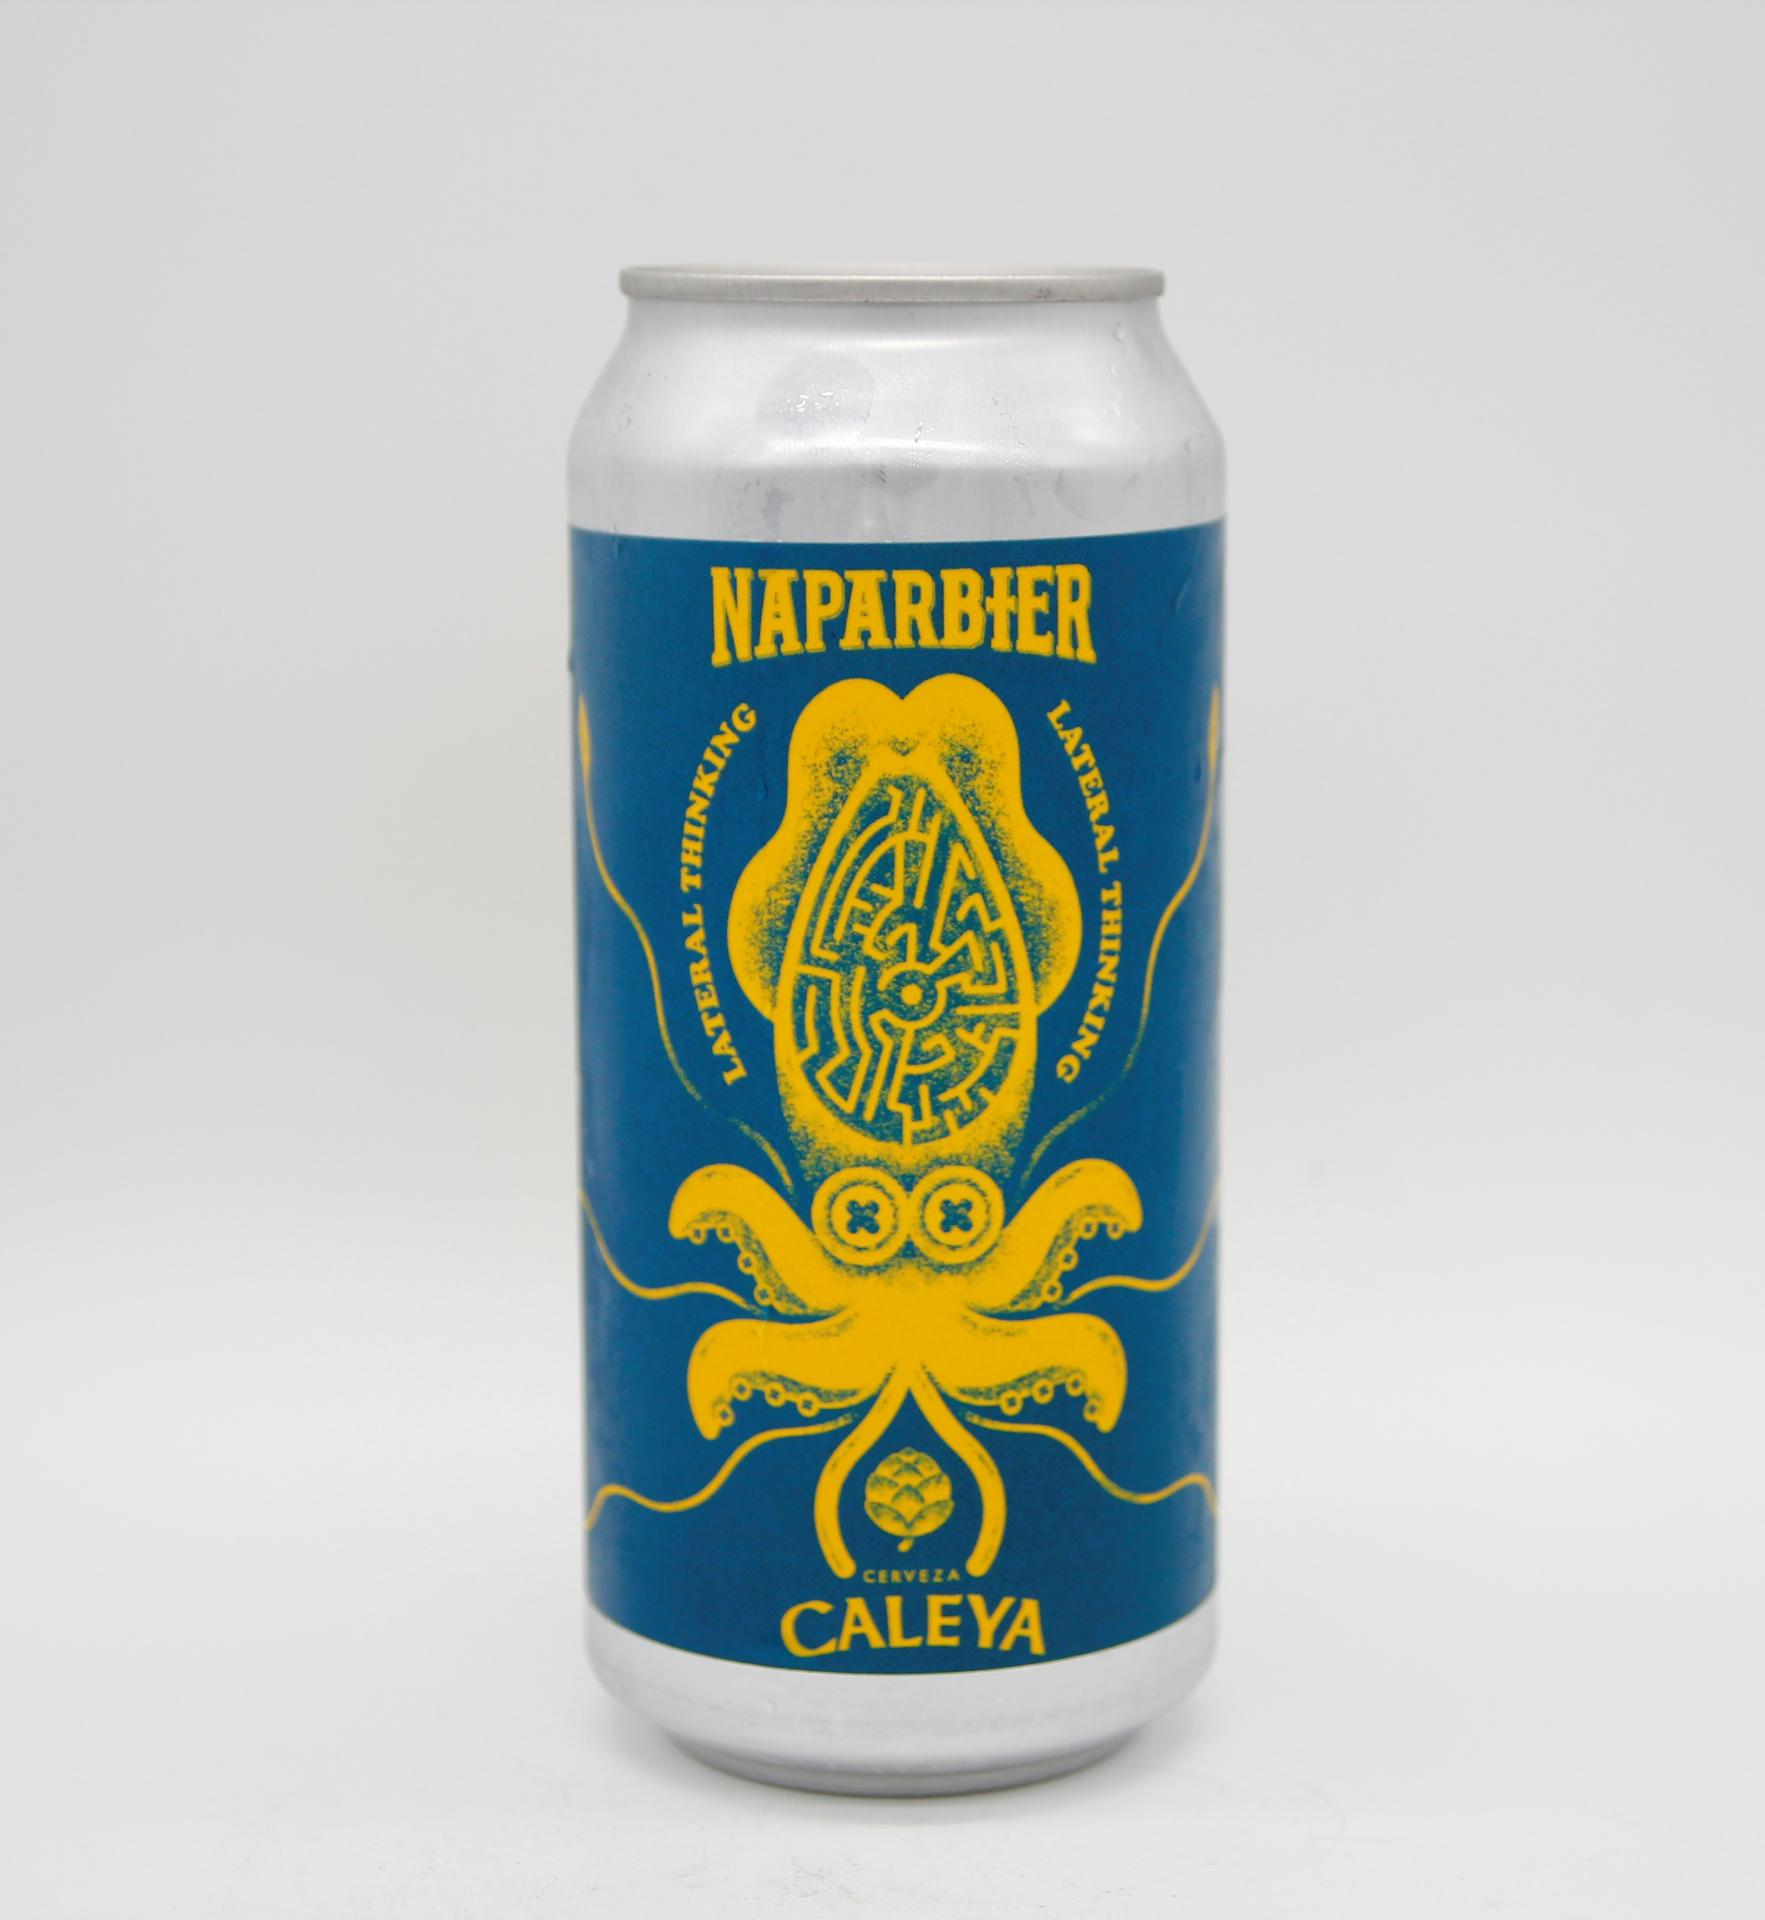 NAPARBIER - LATERAL THINKING (wCALEYA) 44cl